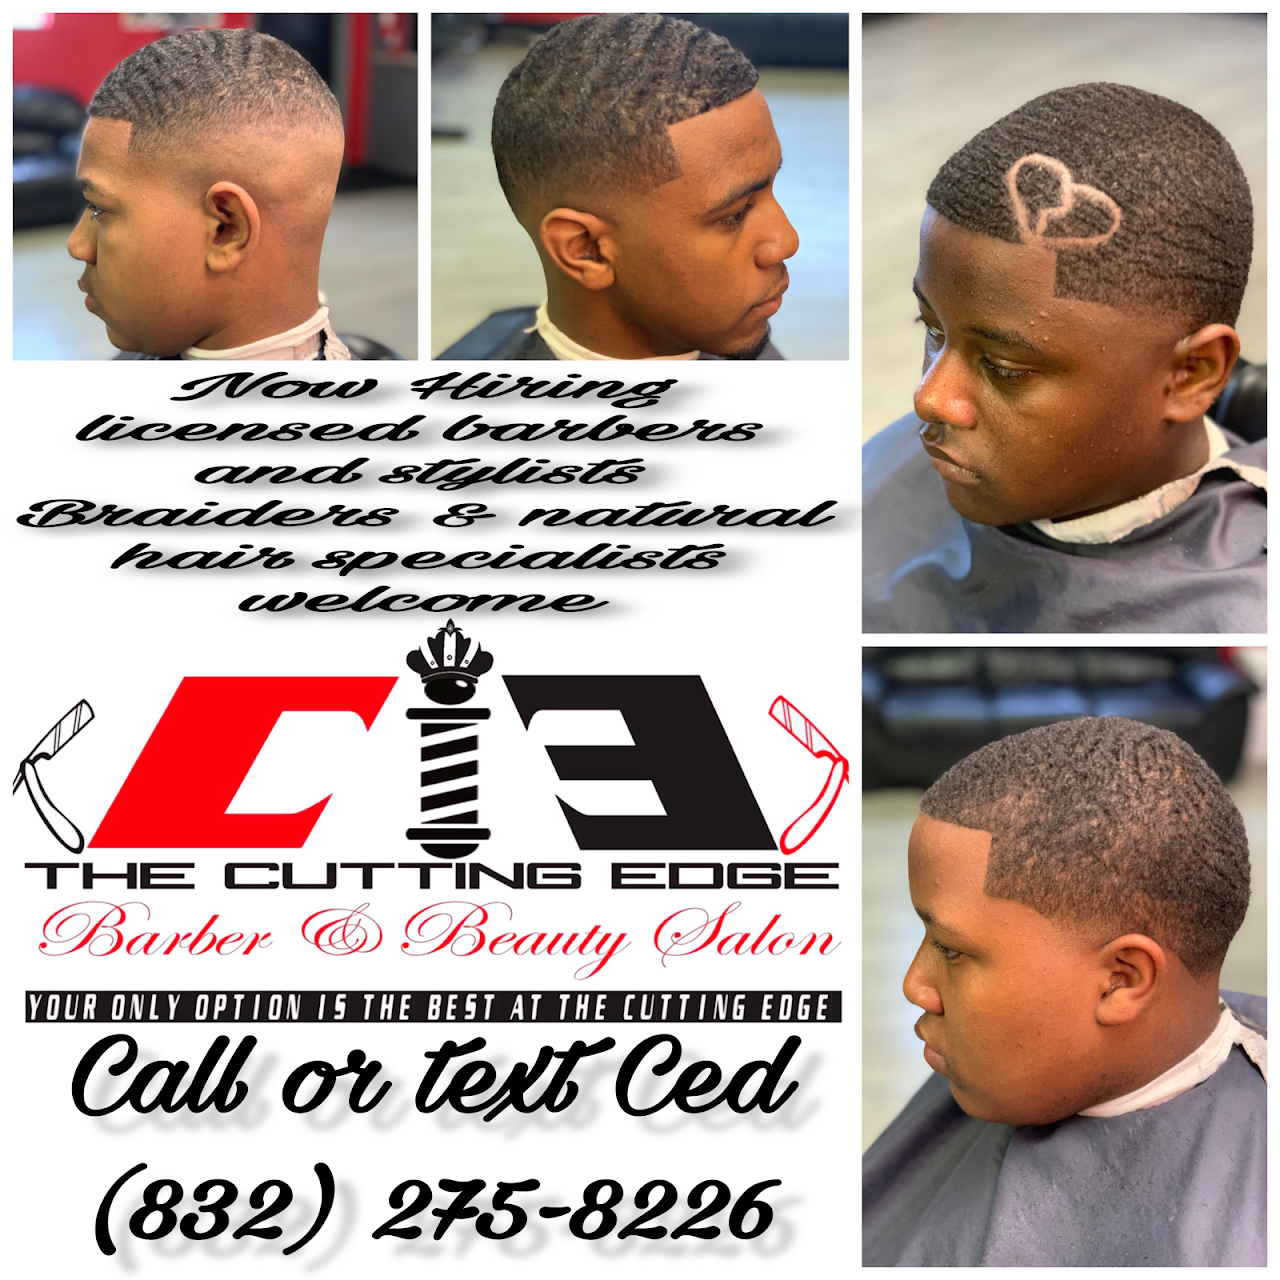 The Cutting Edge Barber and Beauty Salon - Hair Salon in Channelview